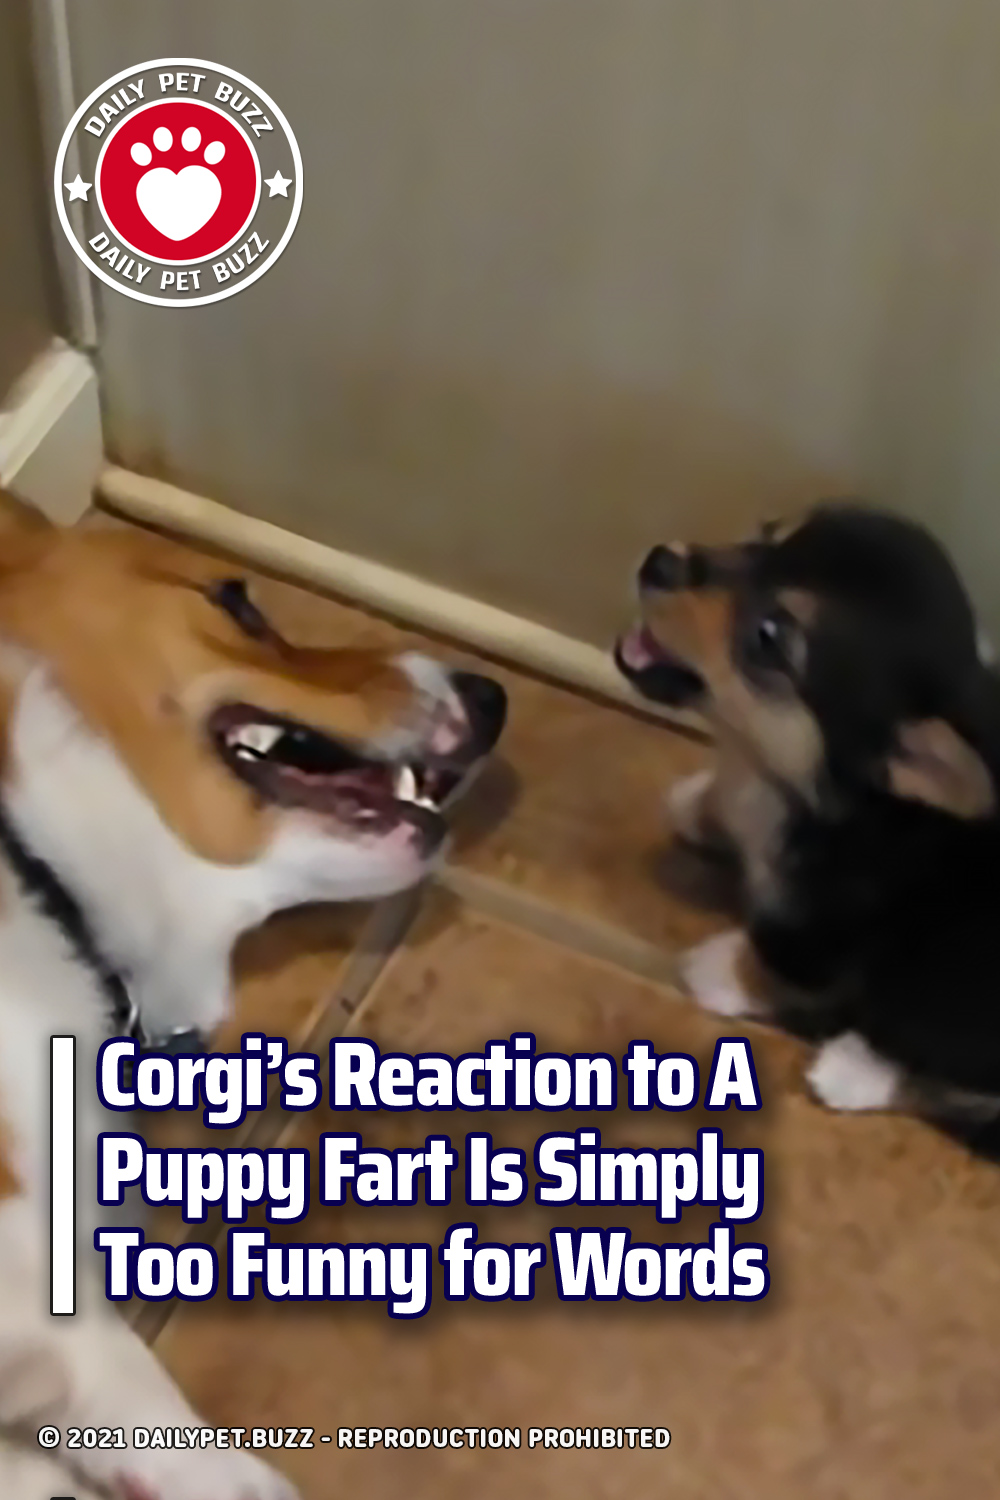 Corgi's Reaction to A Puppy Fart Is Simply Too Funny for Words